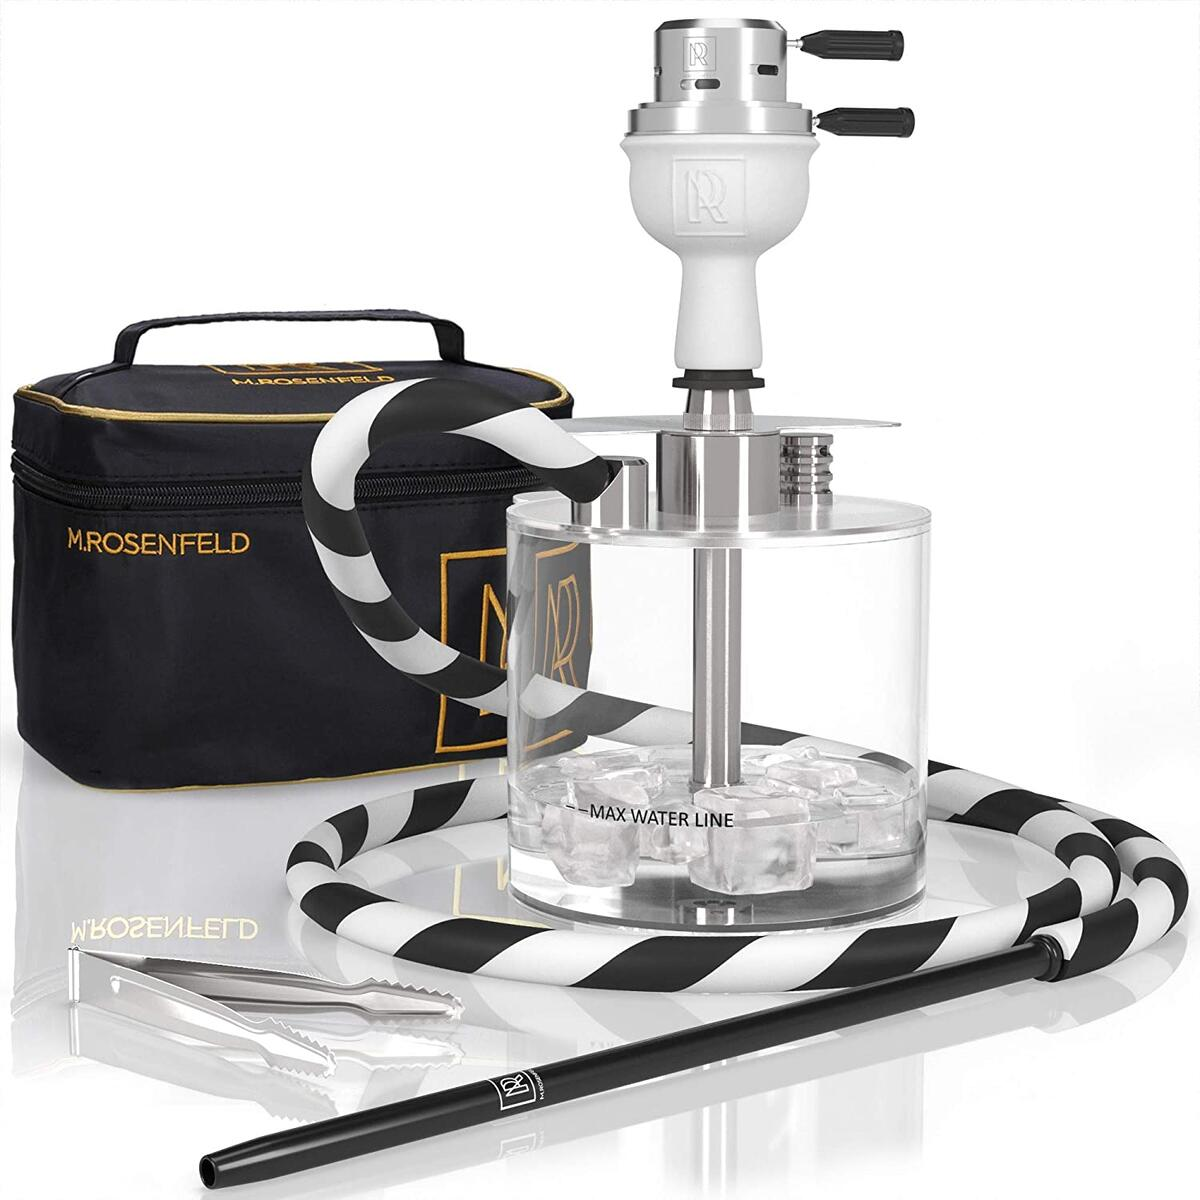 Stainless Steel Portable Hookah Set - New Premium Lightweight Mini Hookah to Go with ONE Coal HMD and White Clay Bowl - Hookah Shisha Stable - Hookah Complete Set with Bag.